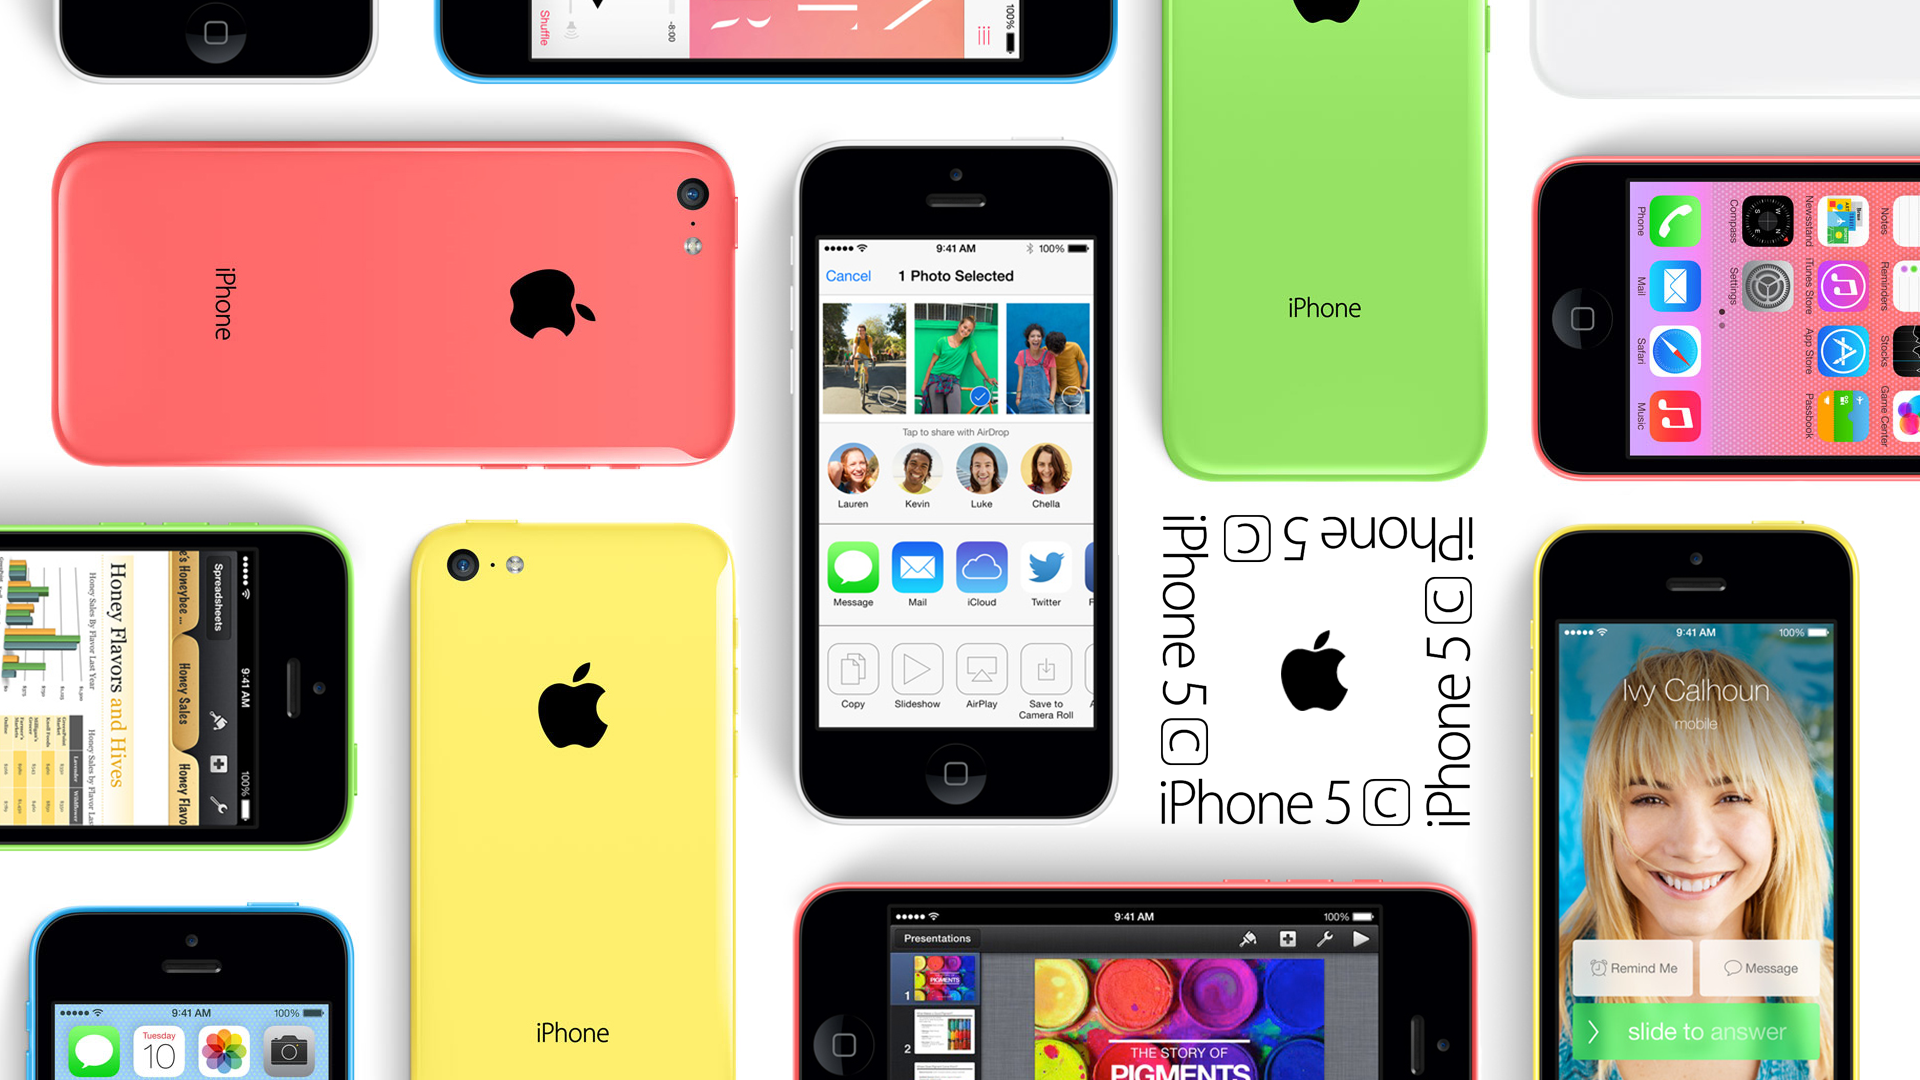 IPhone 5c Wallpaper By TheAcunda On DeviantArt